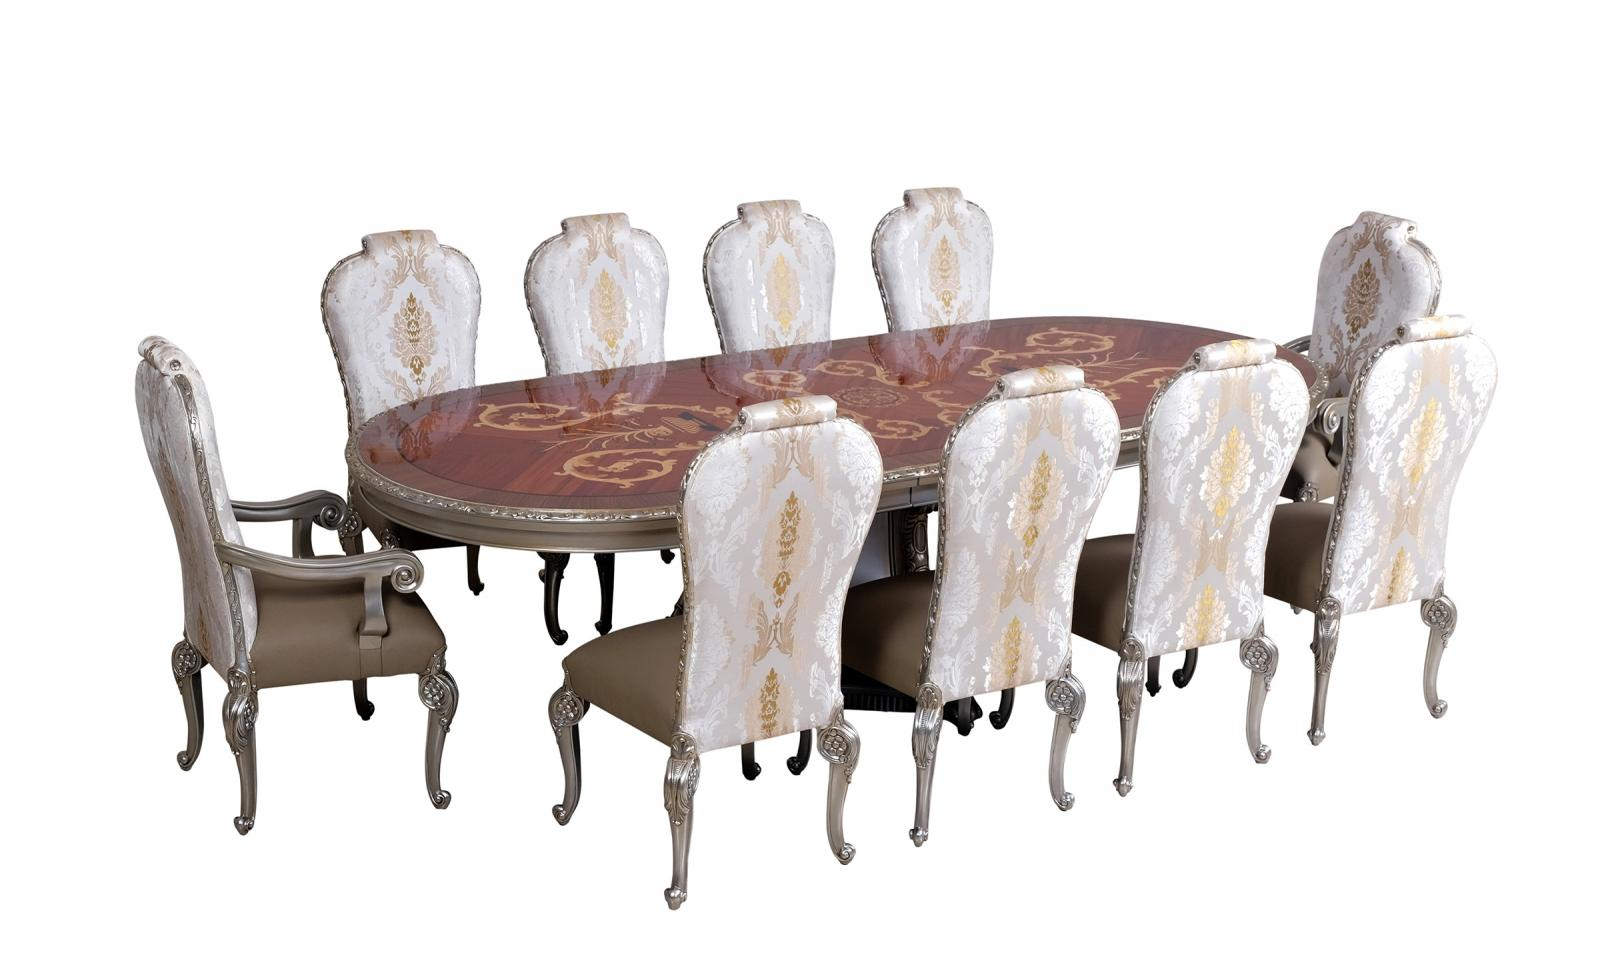 Contemporary, Modern Gold, Ebony, Antique Silver Leather and Fabric, Wood, Solid Hardwood Dining Table Set 11 pcs BELLAGIO by European Furniture